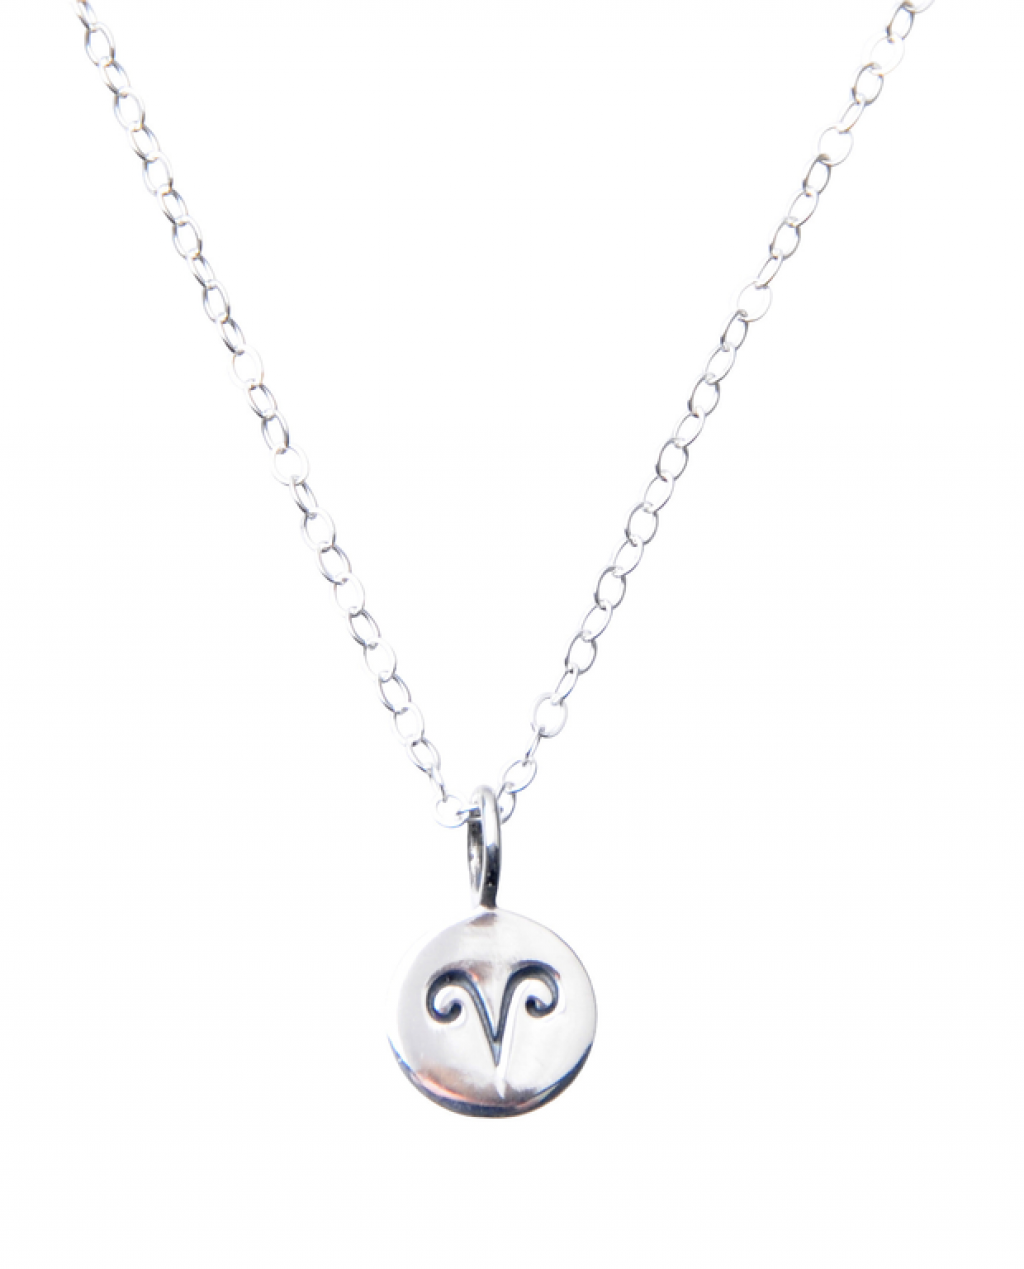 Pam Kerr Designs | Sterling Silver Zodiac Charm Necklace | 1-Aries